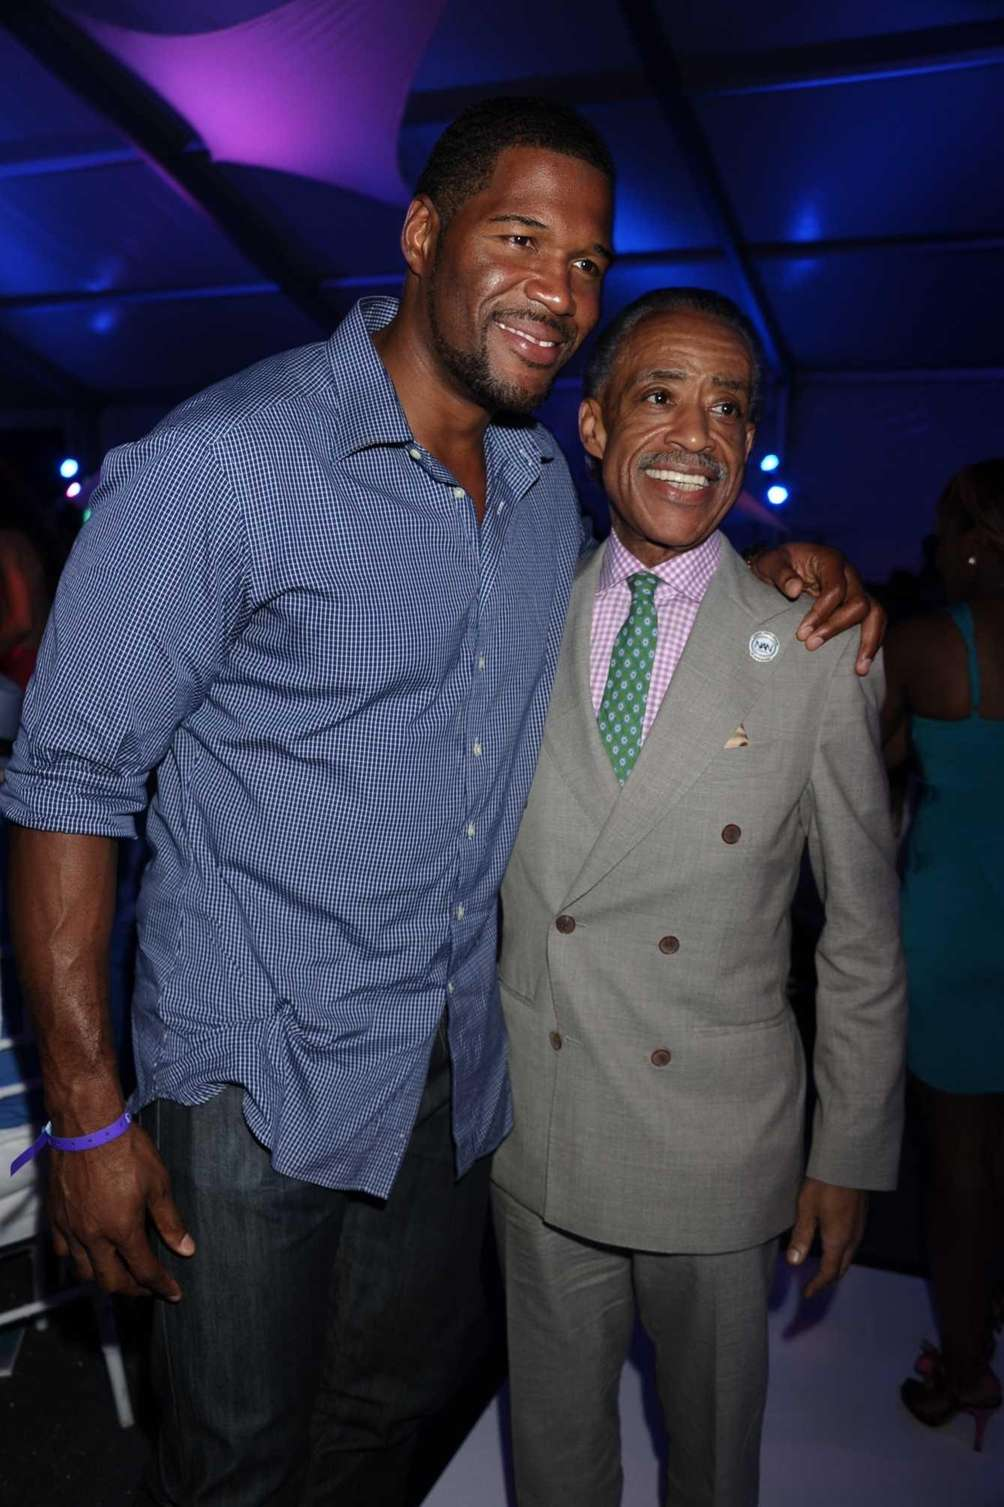 Michael Strahan and the Rev. Al Sharpton attend